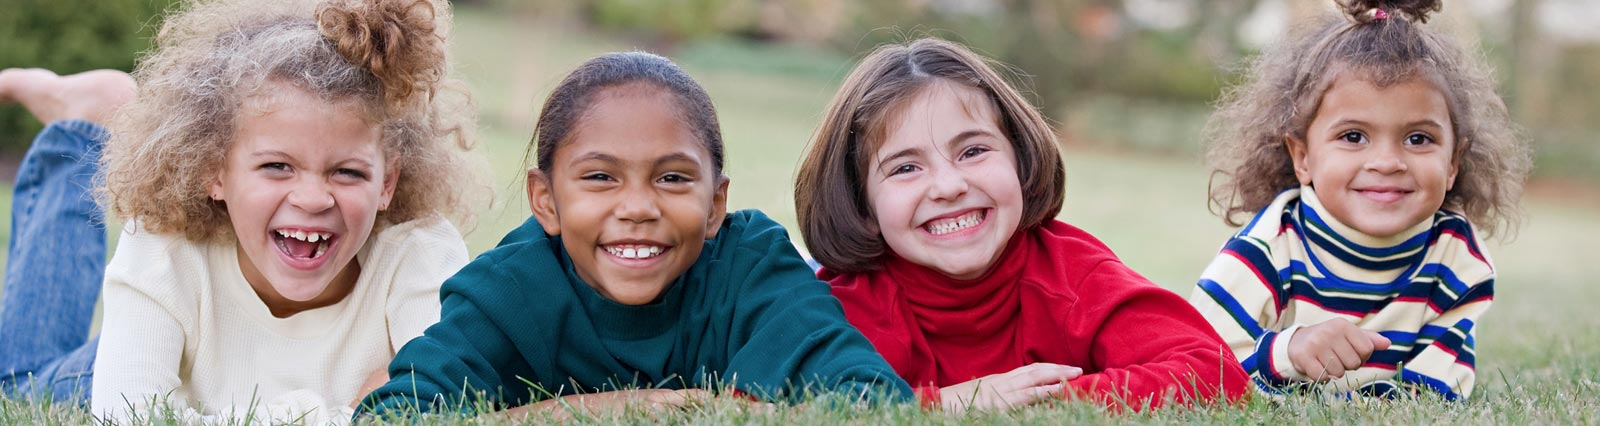 Pediatric Dentist in Lexington, SC serving infants, children and adolescents